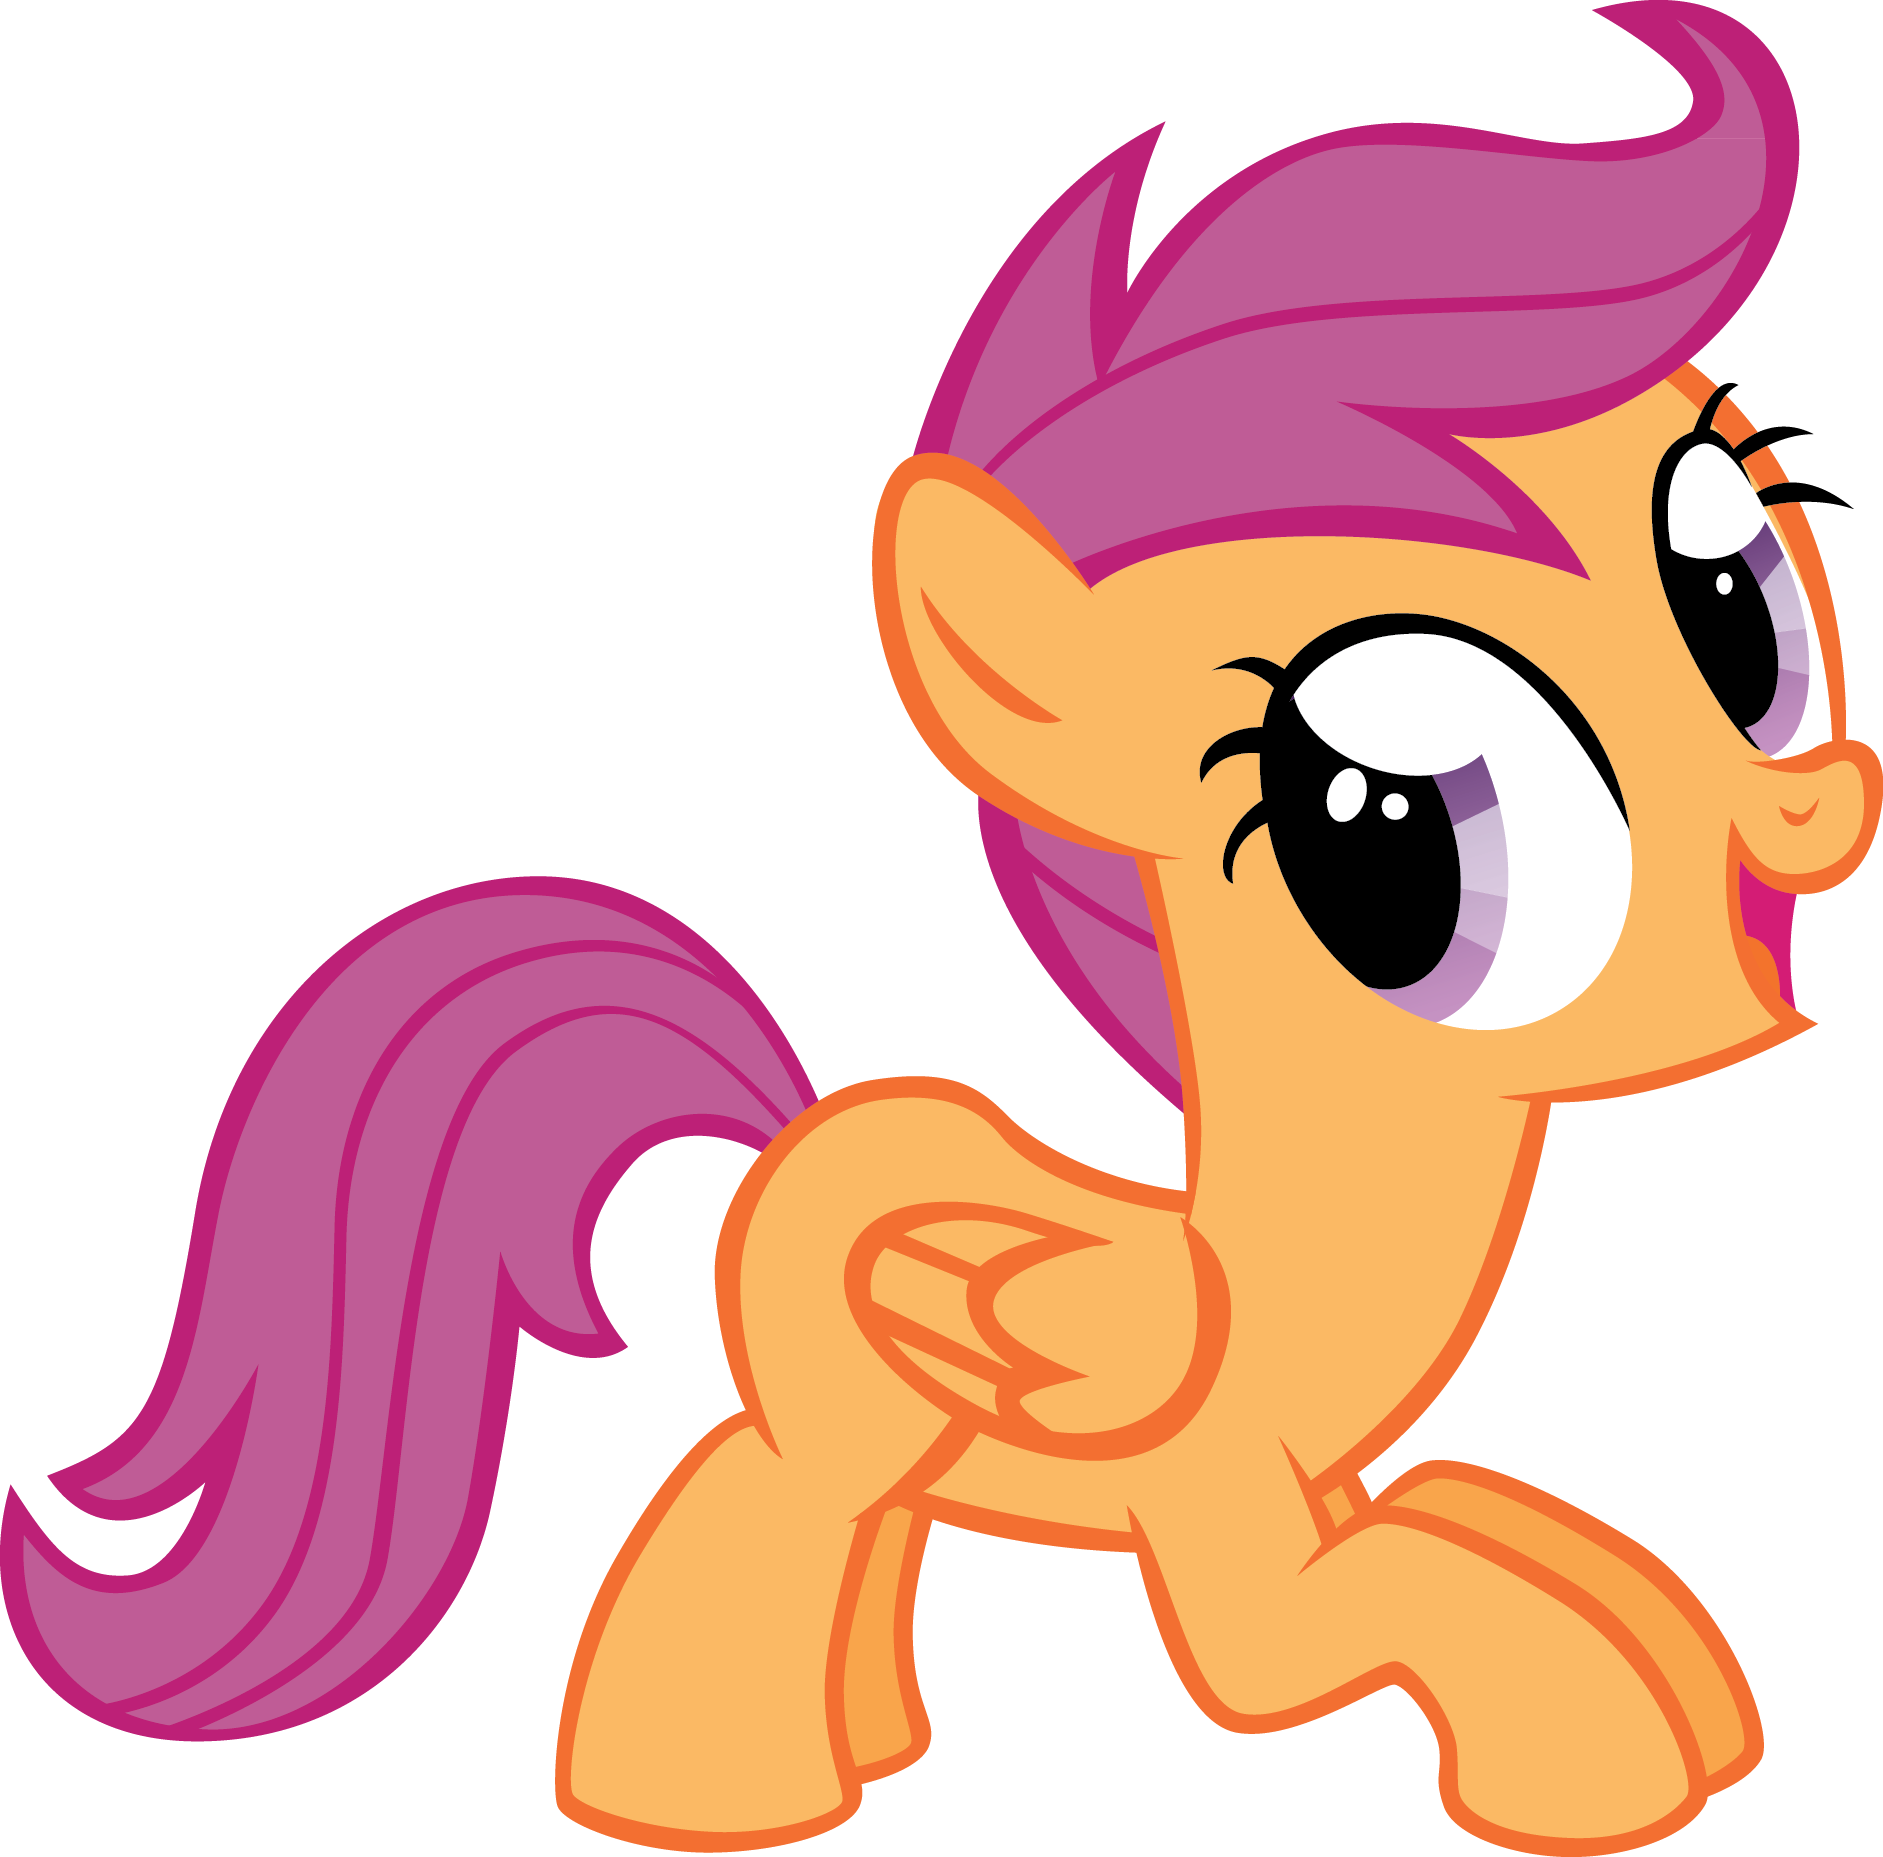 Scootaloo Fun By Sircinnamon Scootaloo Fun By Sircinnamon My Little Pony Rainbow Power Apple Bloom Clipart Full Size Clipart 4988157 Pinclipart Choose from 9200+ transparent background graphic resources and download in the form of png, eps, ai or psd. scootaloo fun by sircinnamon scootaloo